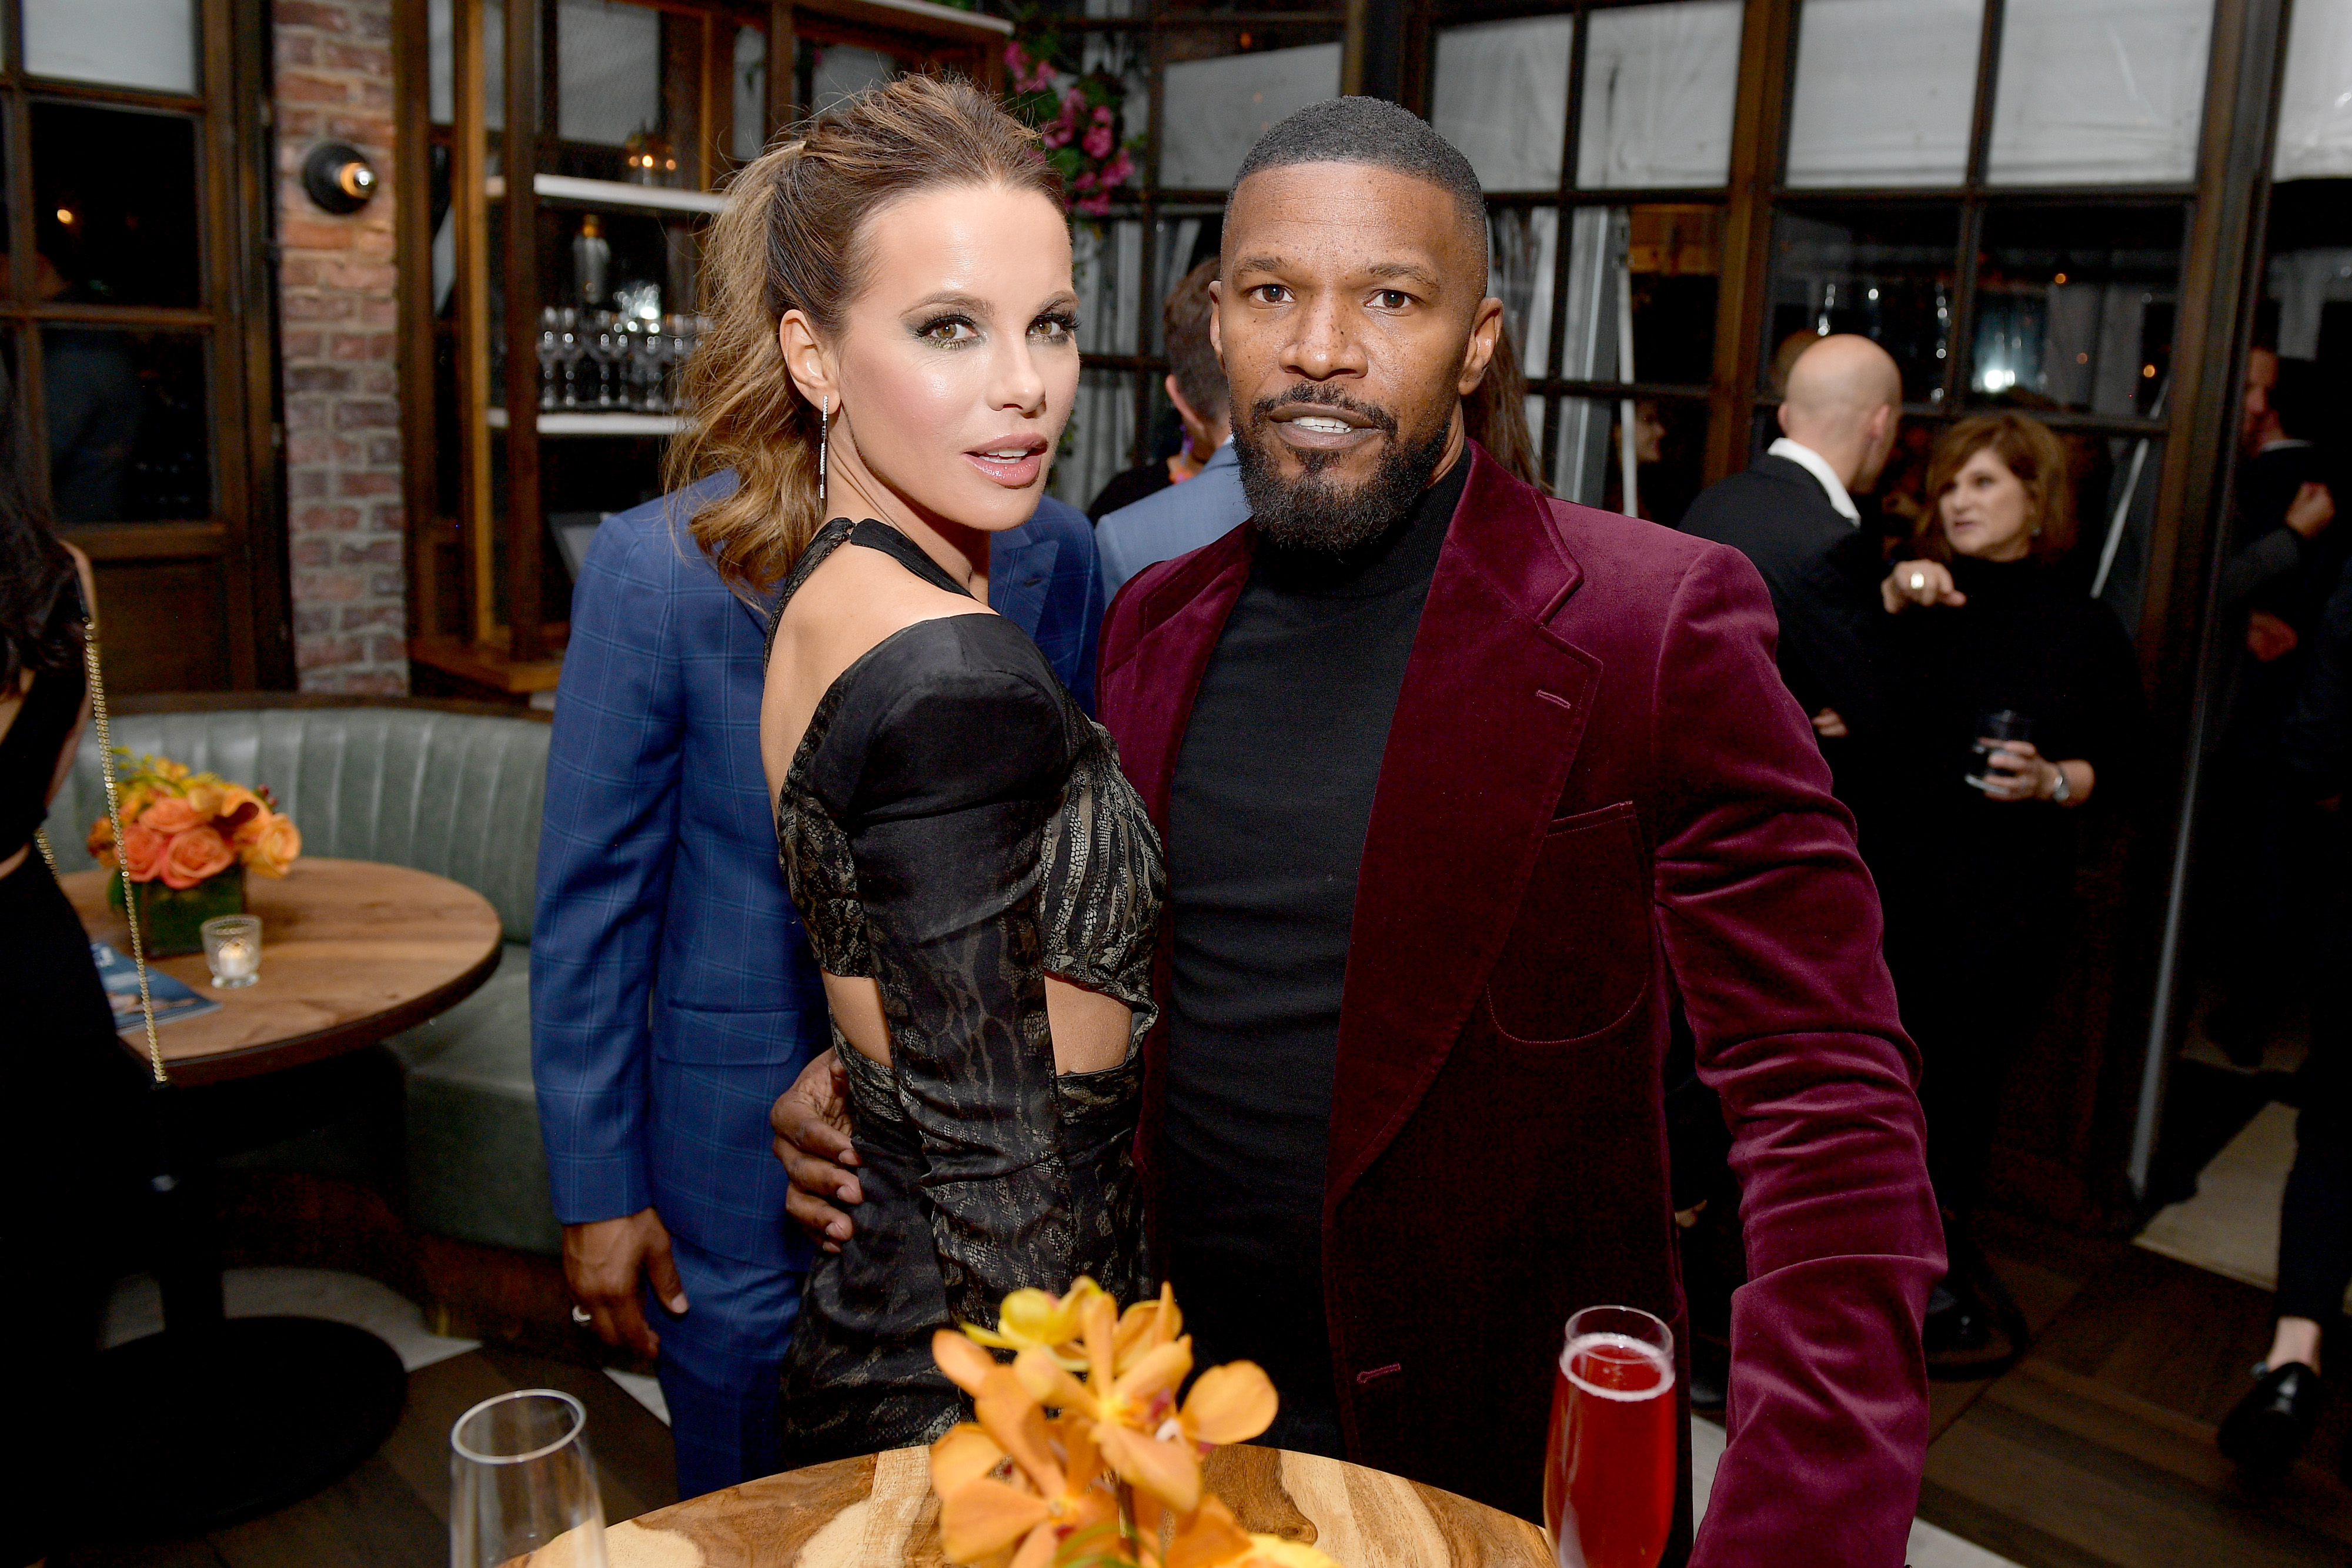 Westlake Legal Group GettyImages-1187763217 Kate Beckinsale shoots down Jamie Foxx dating rumors Nate Day fox-news/entertainment/events/couples fox-news/entertainment/celebrity-news fox-news/entertainment fox news fnc/entertainment fnc ff4e4278-dd8c-5bc9-8133-51857e895916 article